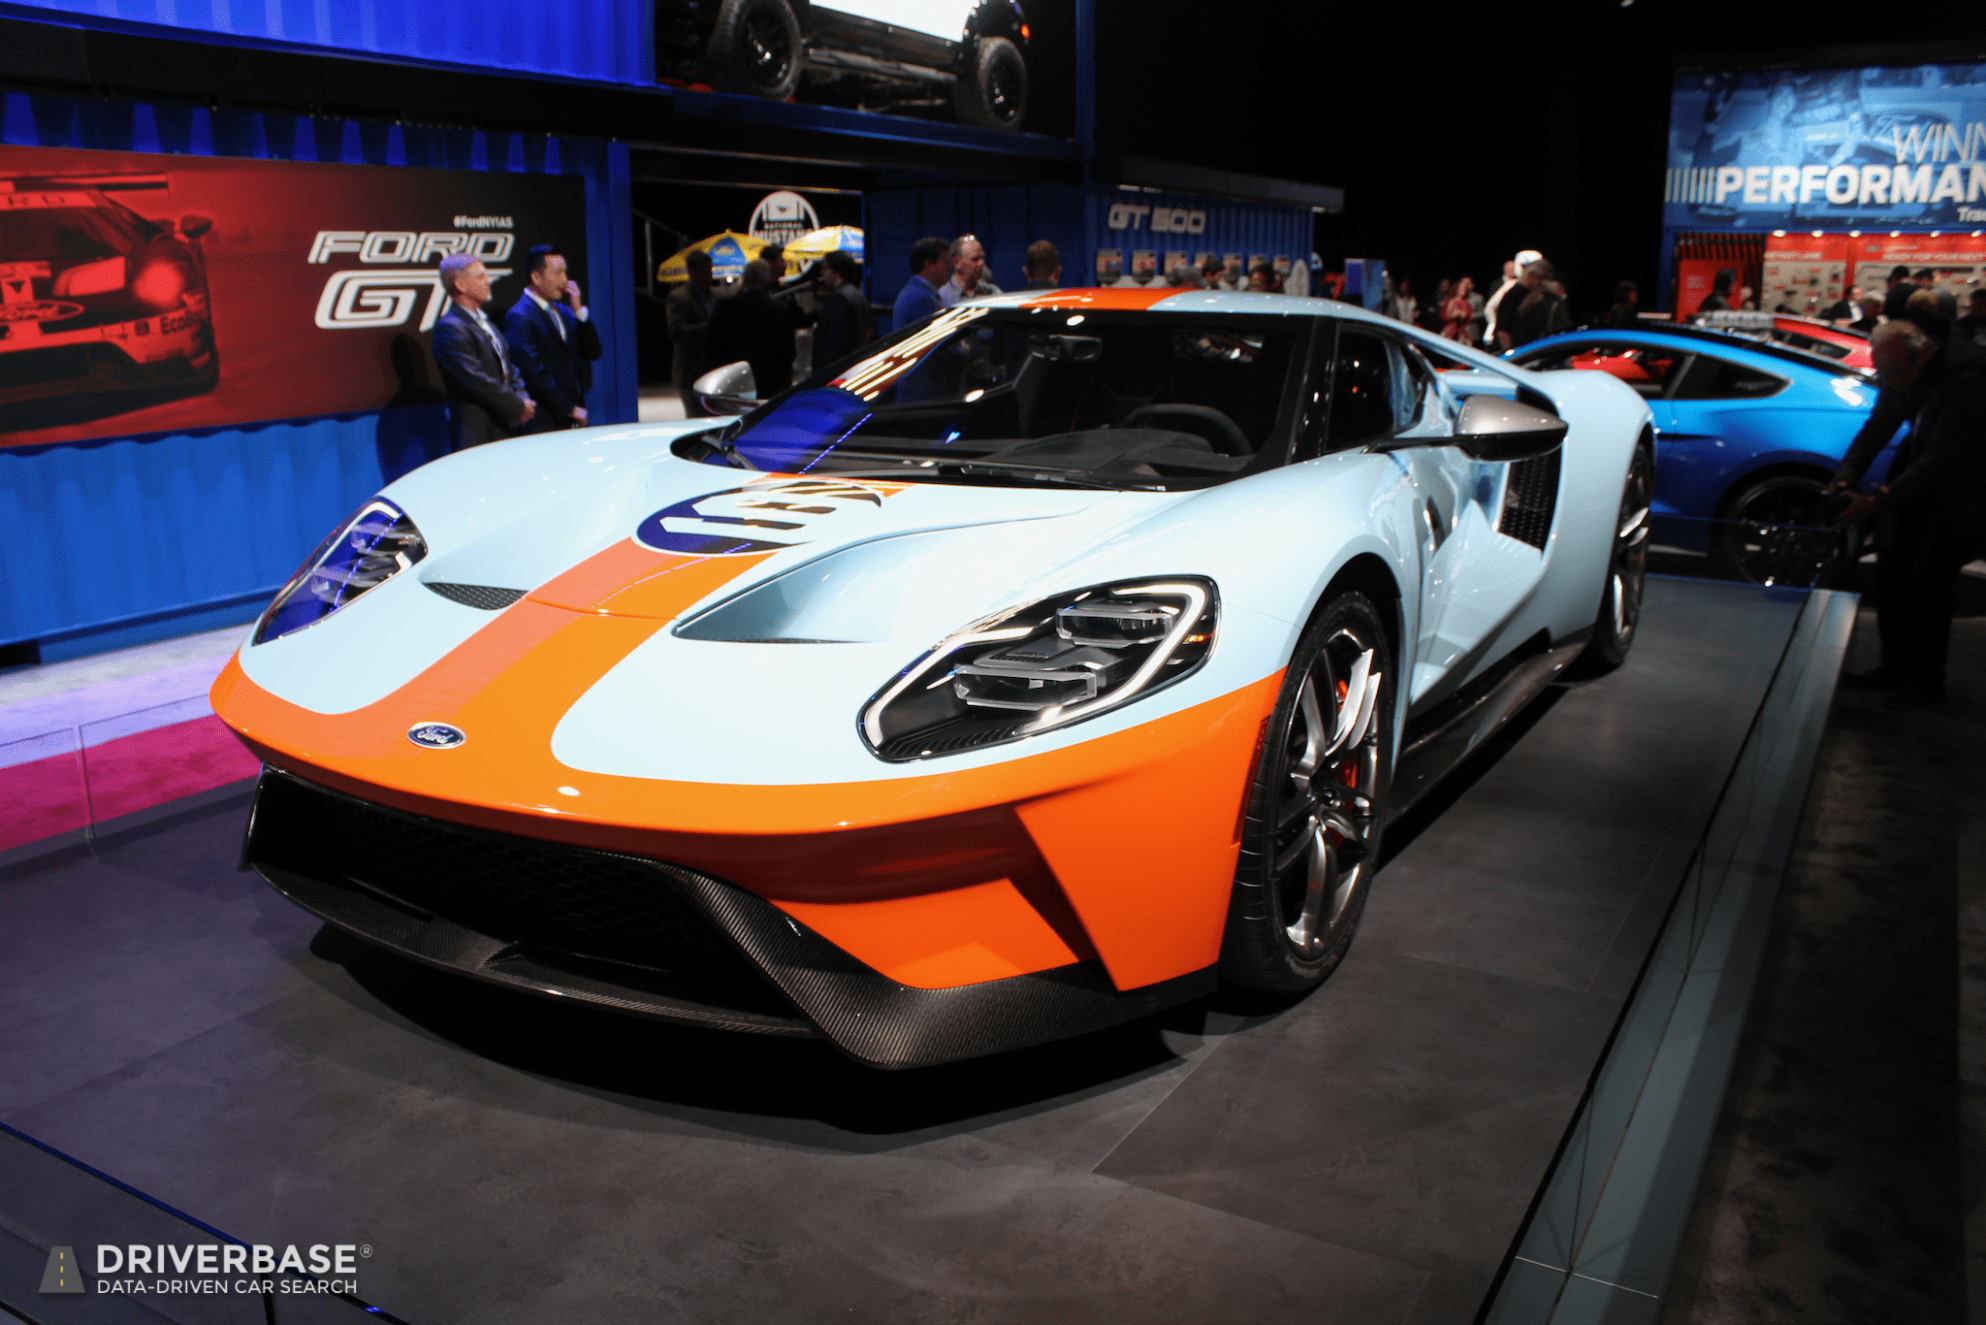 Seven Common Mistakes Everyone Makes In 2020 Ford Gt Supercar Design Seven Common Mistakes Everyone Makes In 2020 Ford Gt Supercar Design 2020 Ford Gt Superca